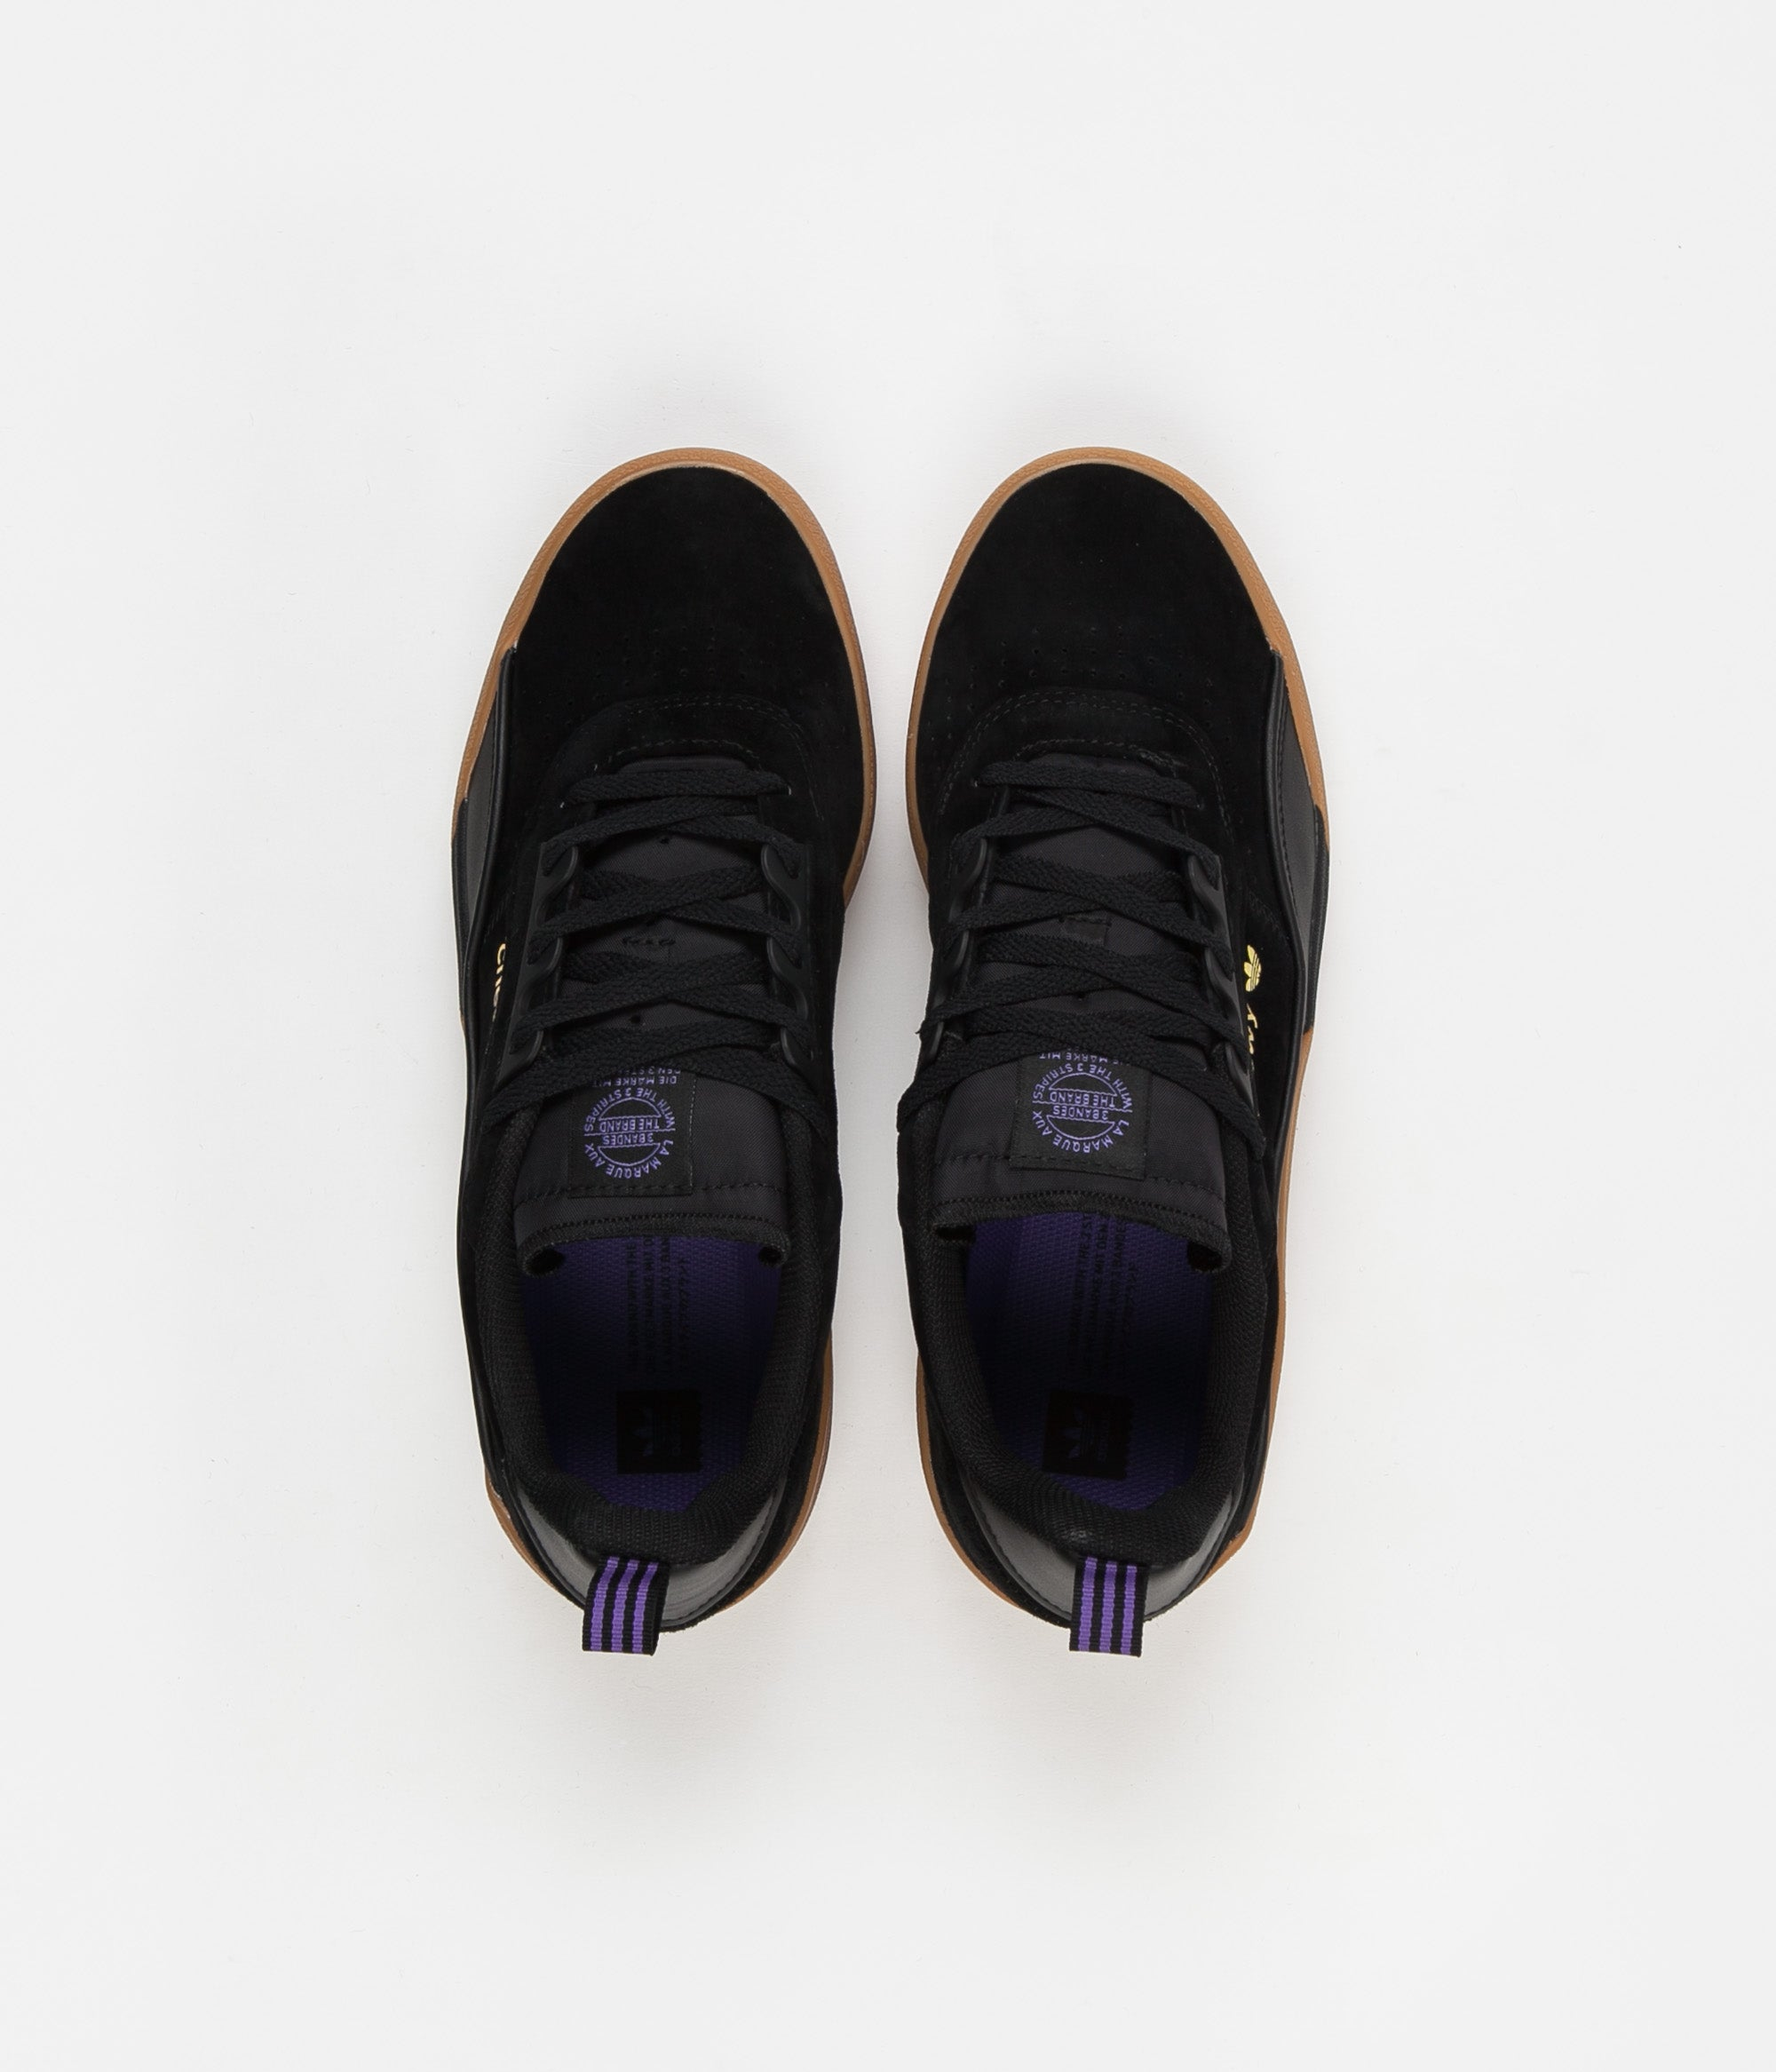 Adidas Liberty Cup 'Chewy' Shoes Core Black Gold